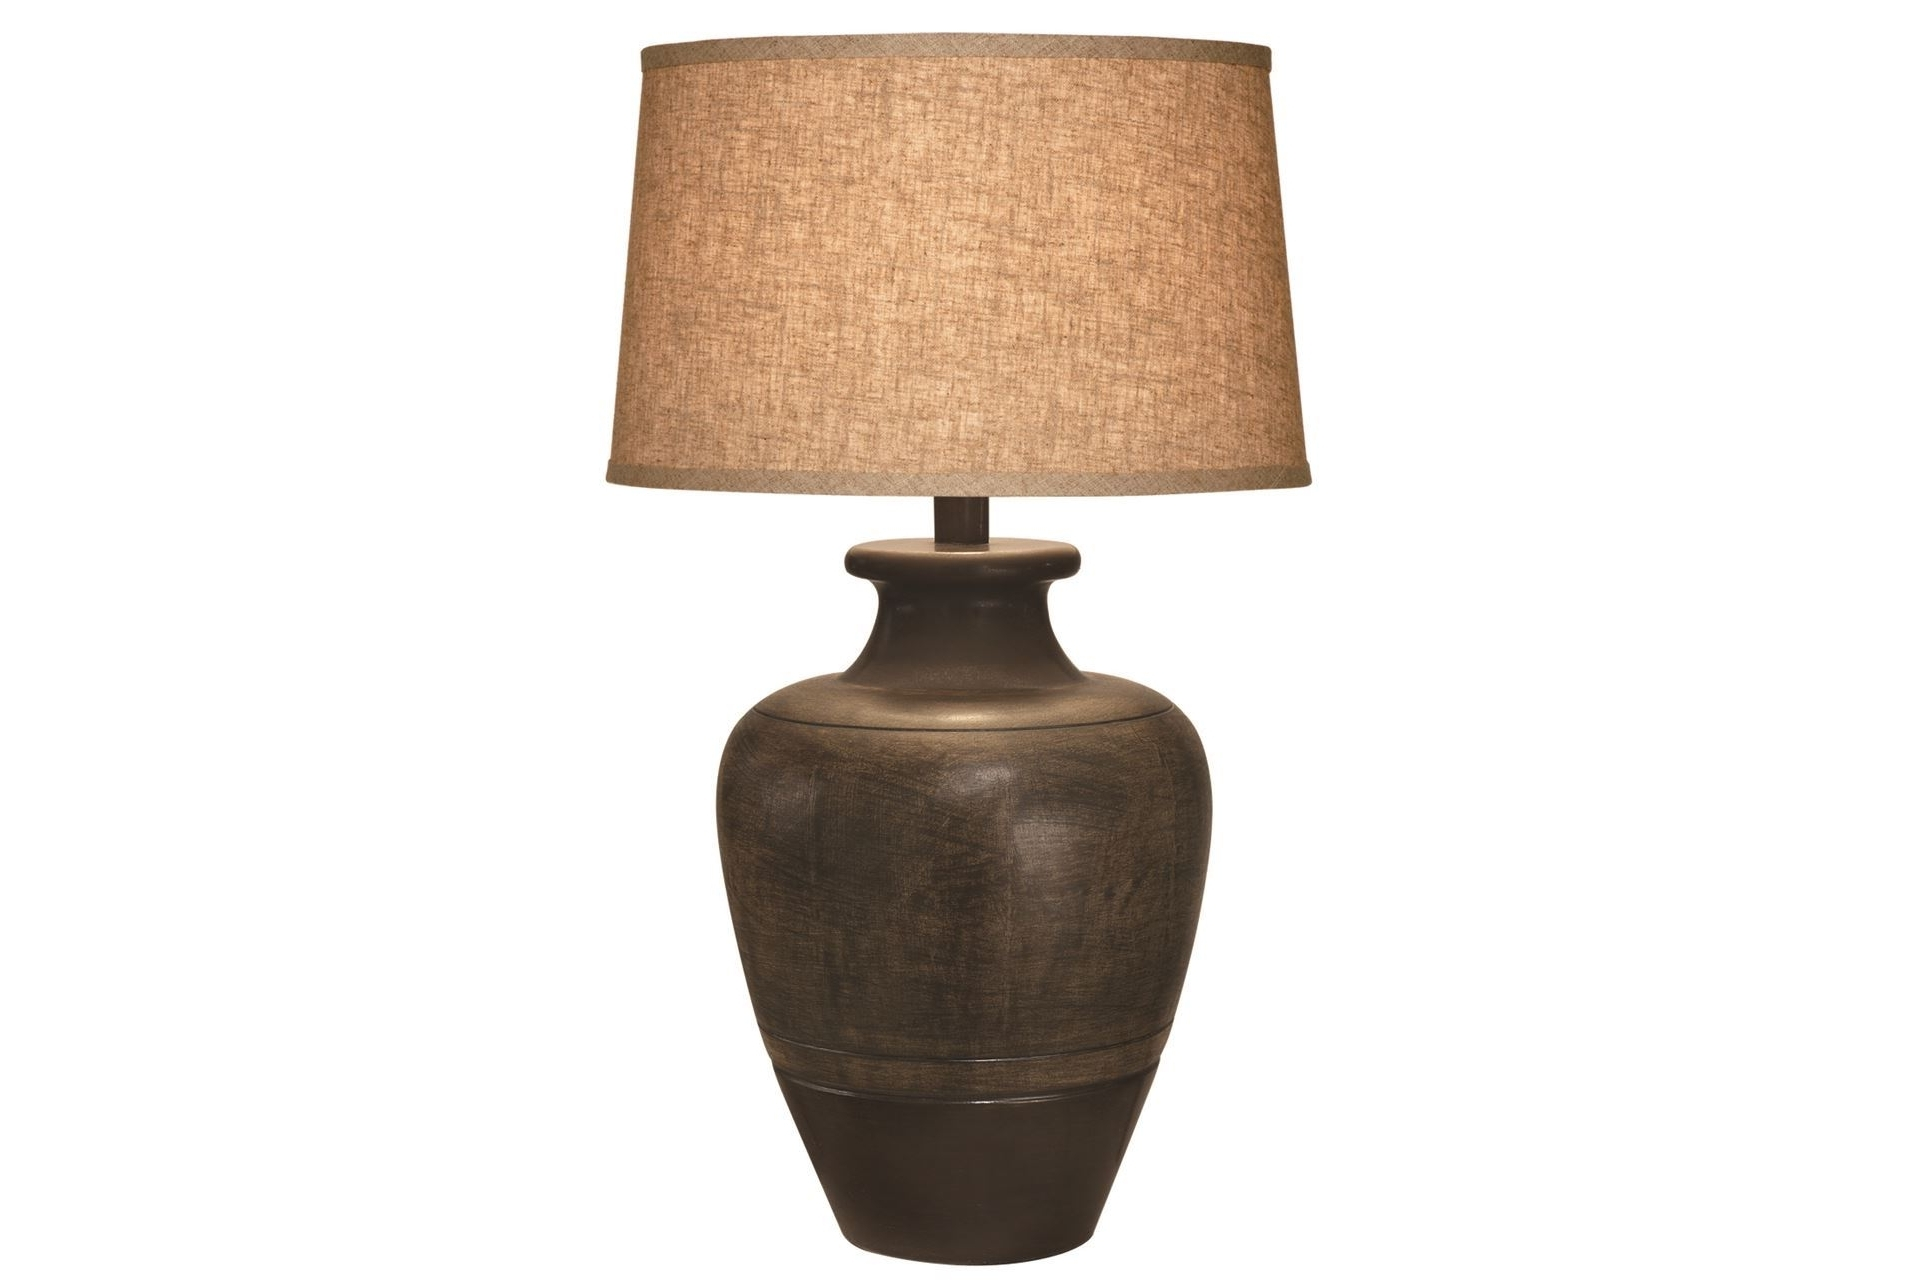 2018 Bronze Living Room Table Lamps With Regard To Bronze Table Lamps For Living Room – Living Room Decorating Design (View 7 of 15)